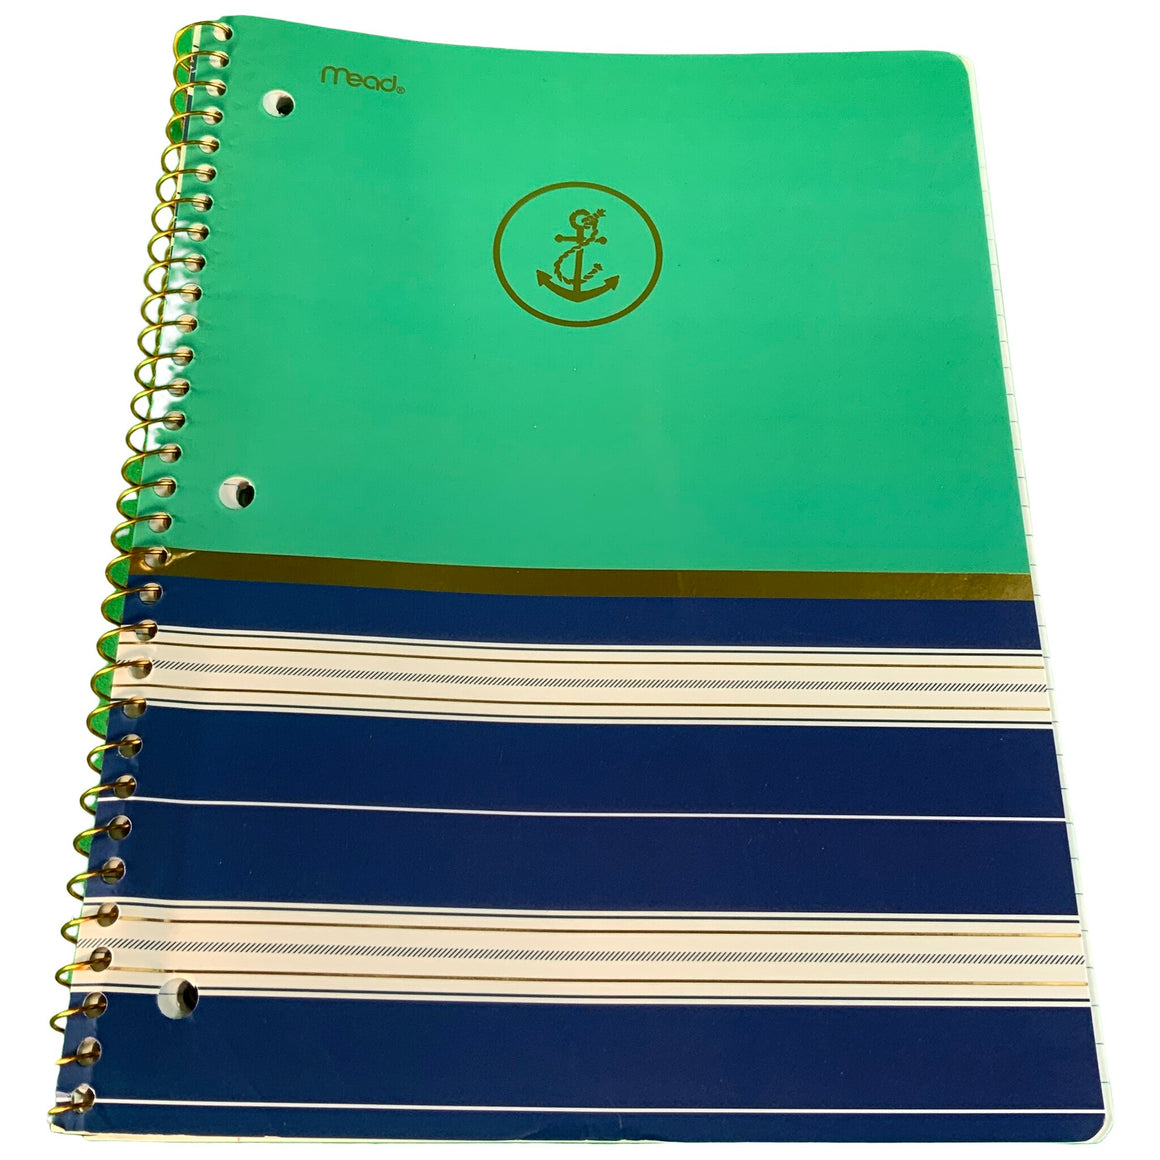 1 Subject Notebook - Anchors/Stripes - Mead